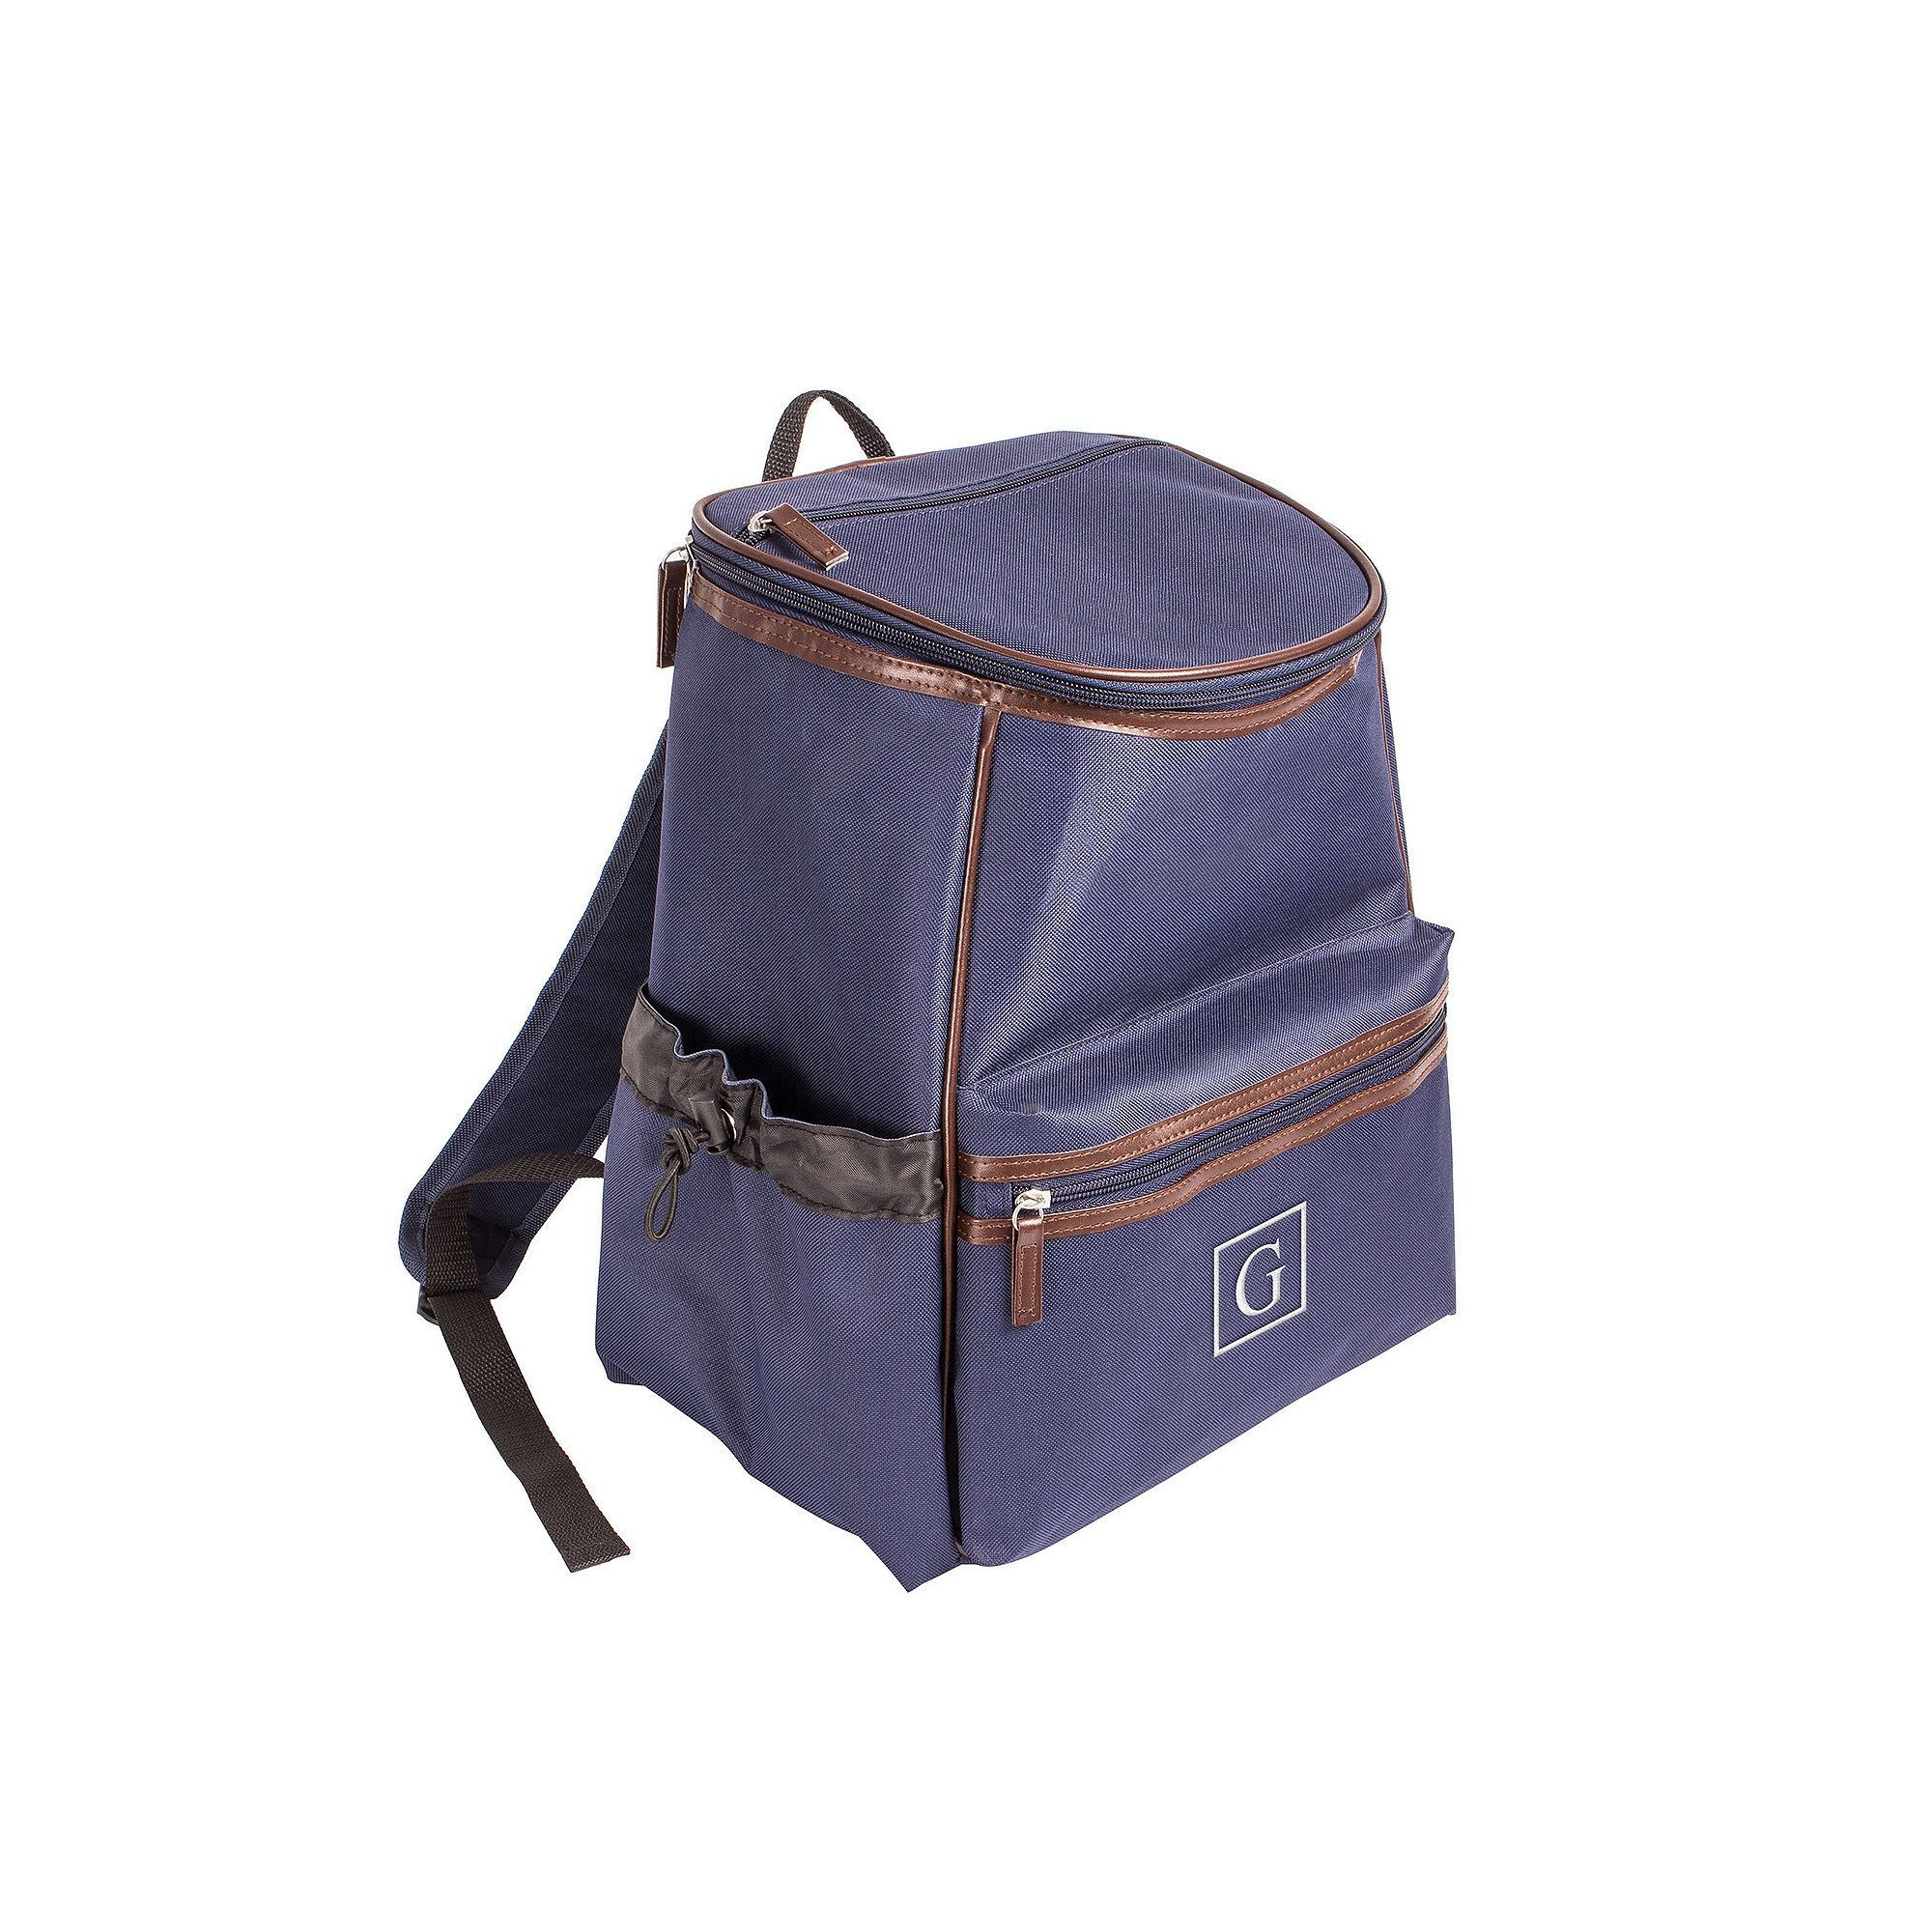 Cathy s Concepts Monogram Insulated Backpack Cooler f8844262f3ba1